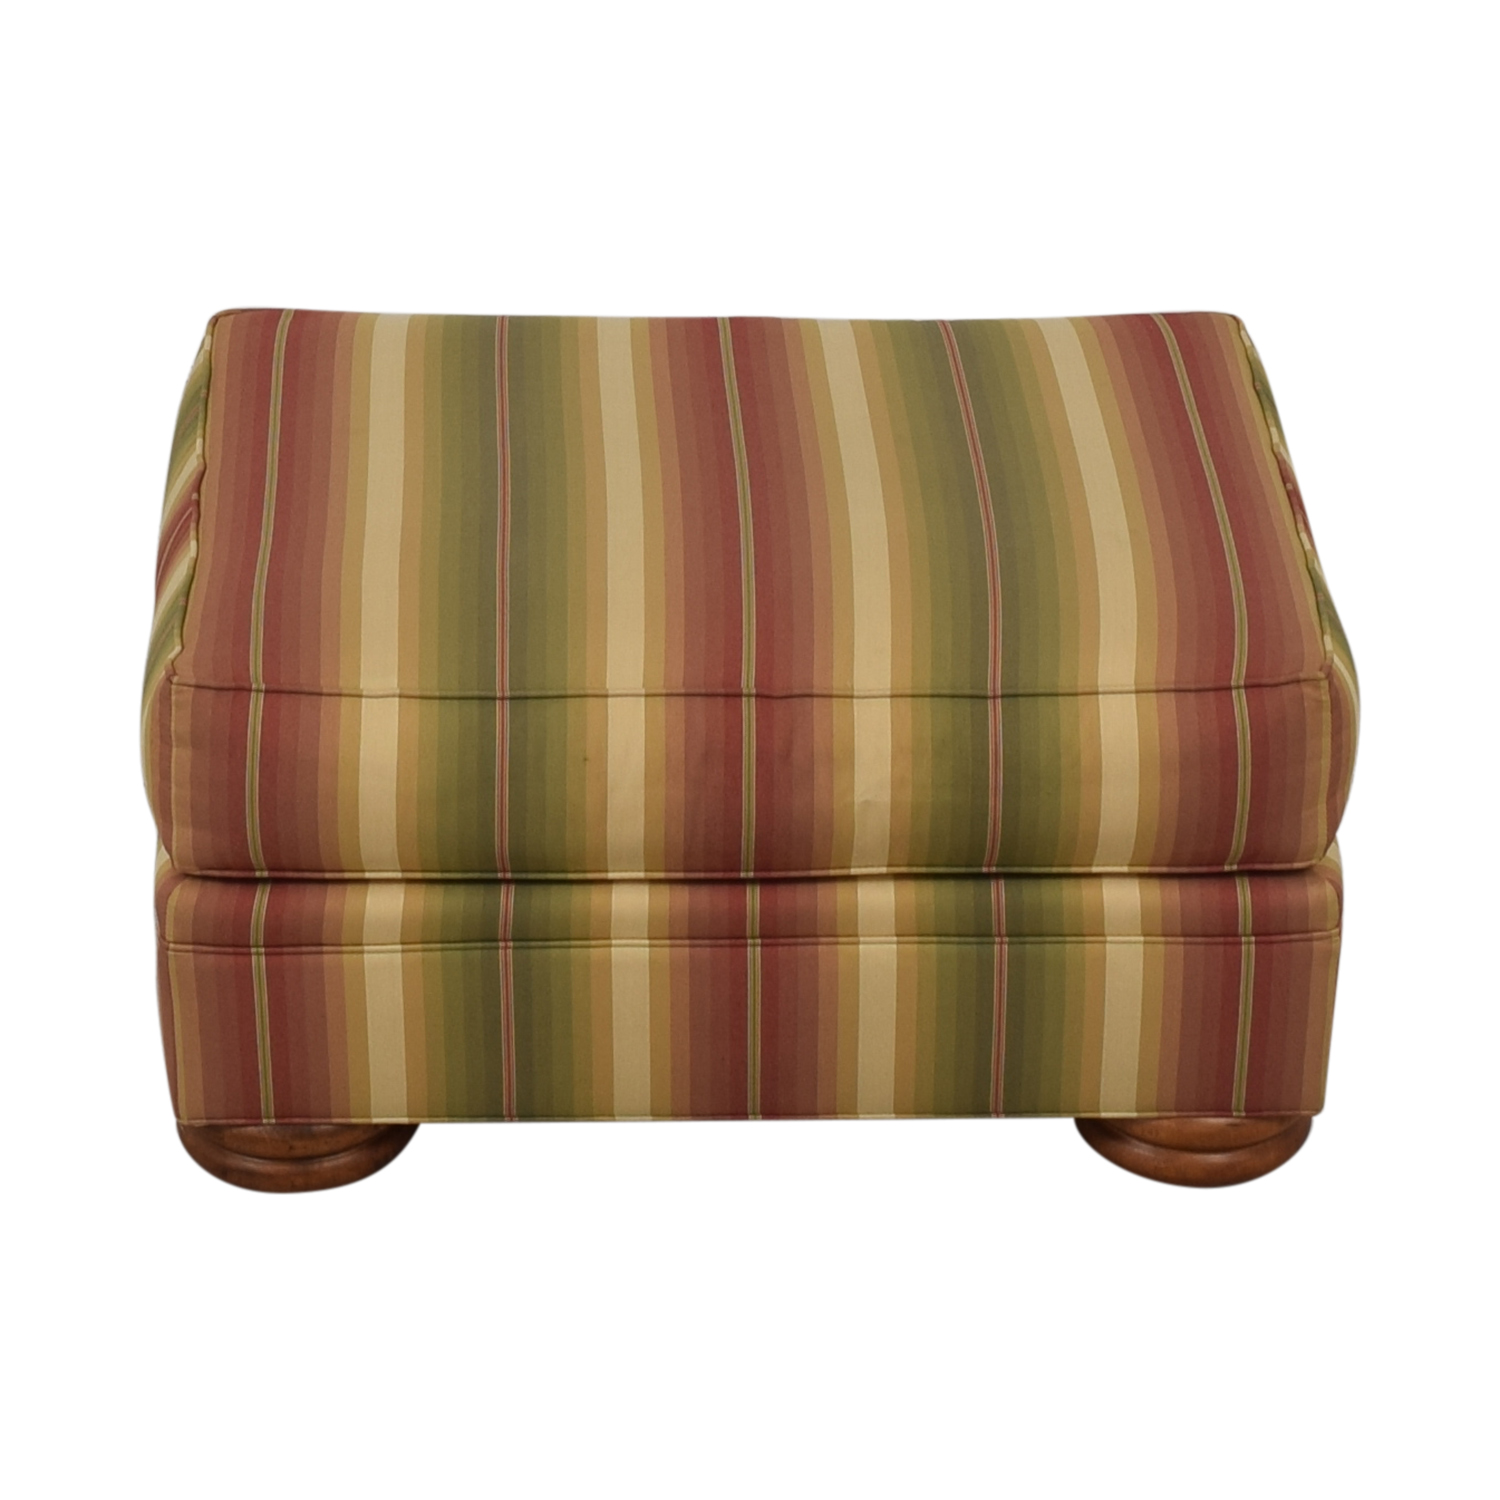 Thomasville Thomasville Striped Ottoman used